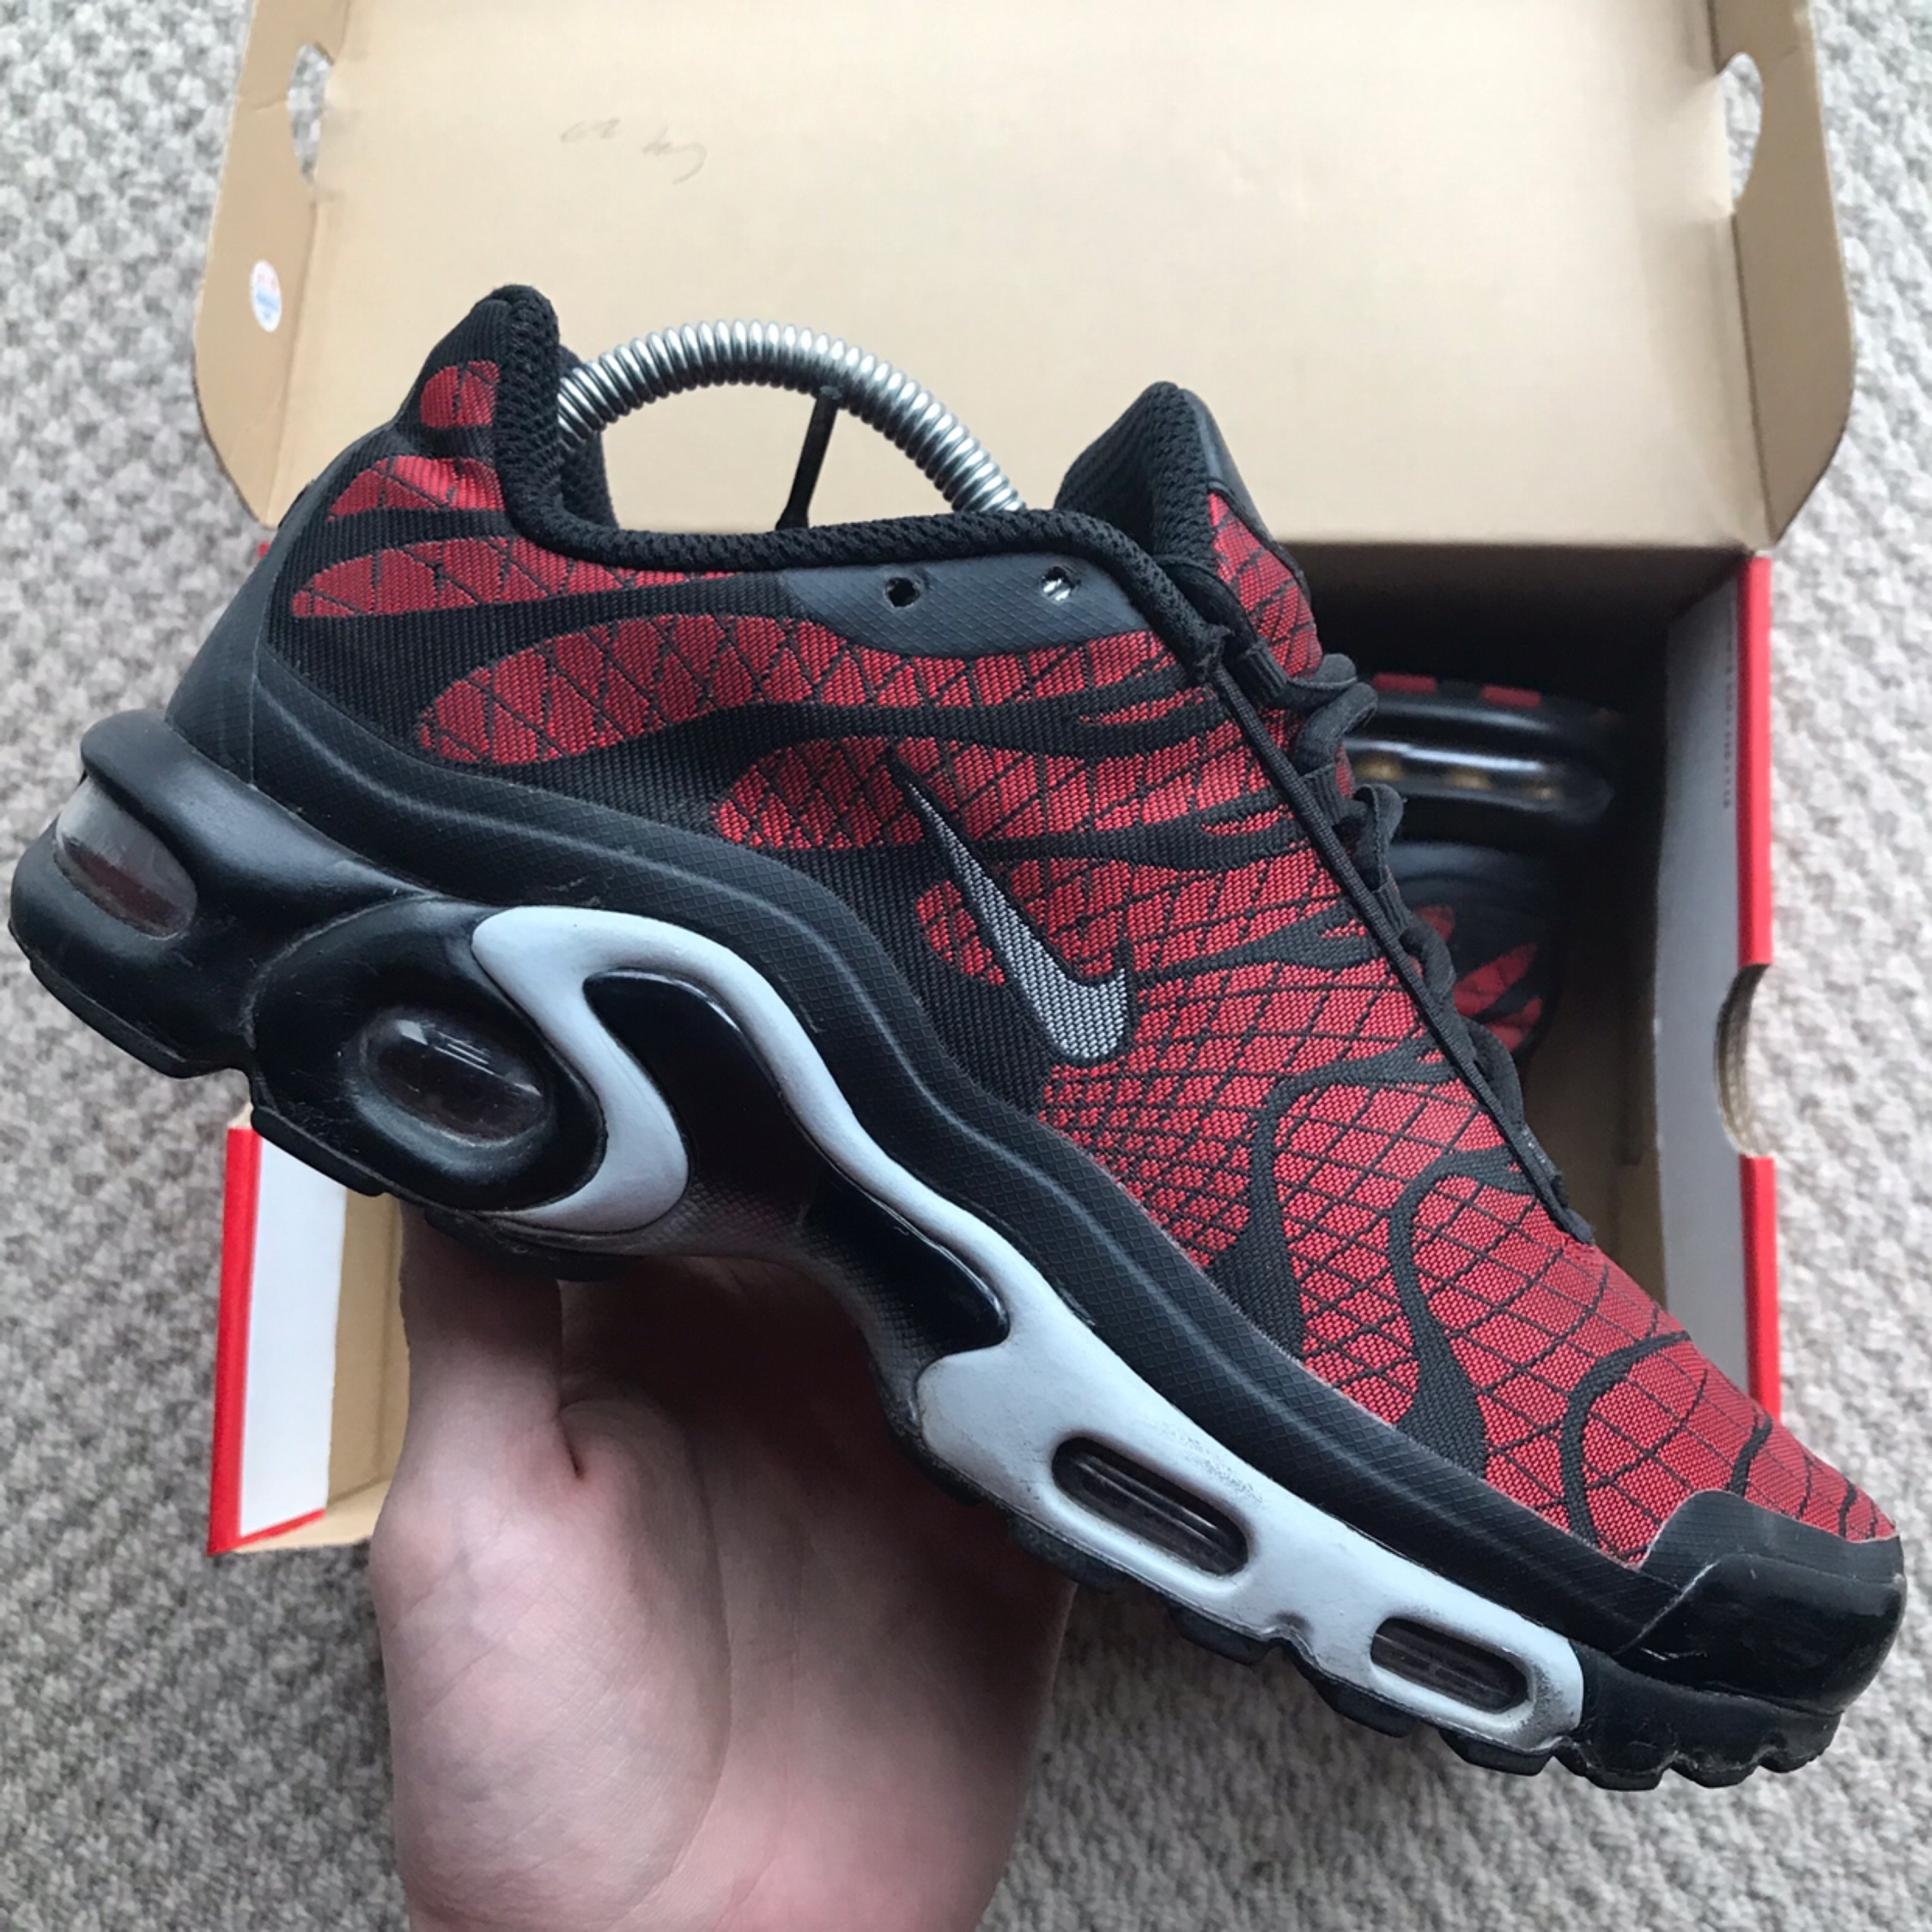 Nike Air Max Tn Tuned Red Black White Trainers